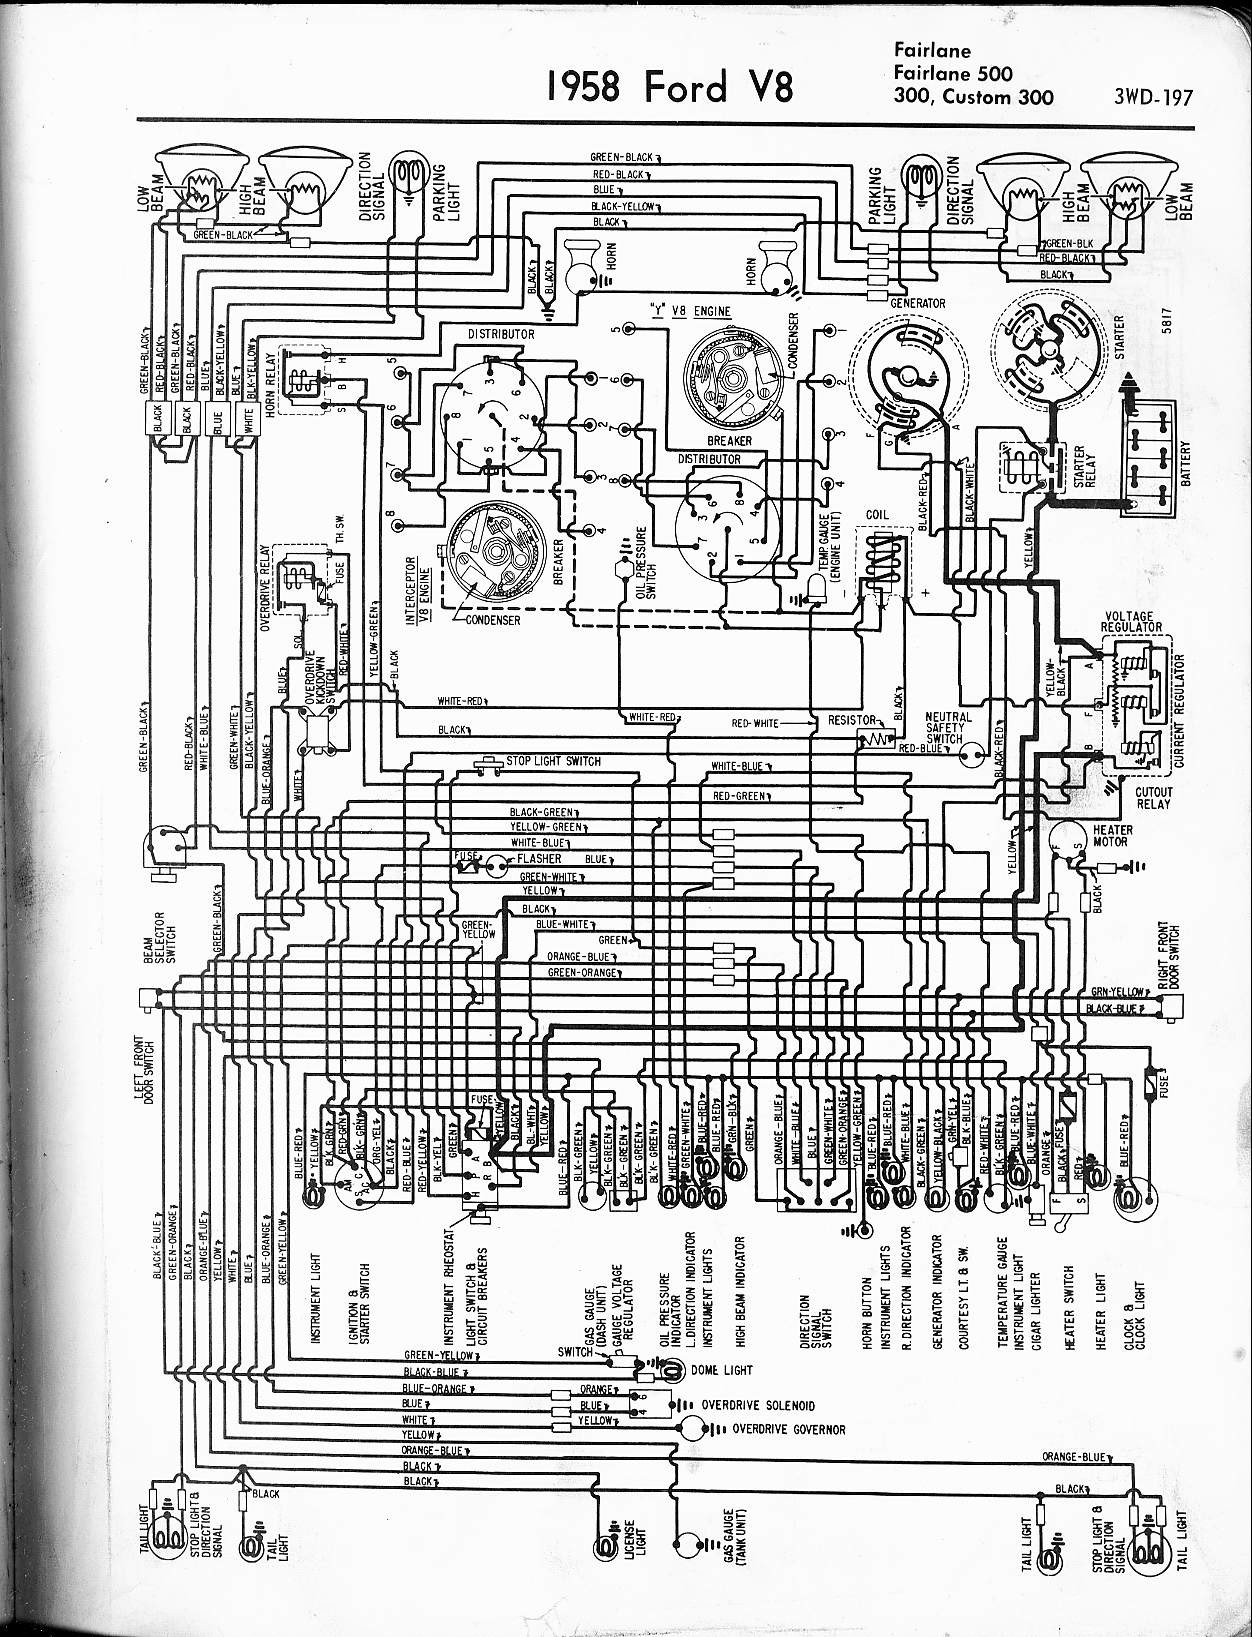 1970 ford torino wiring diagram 1970 ford torino wiring diagram - wiring diagram ... 1970 ford bronco wiring diagram